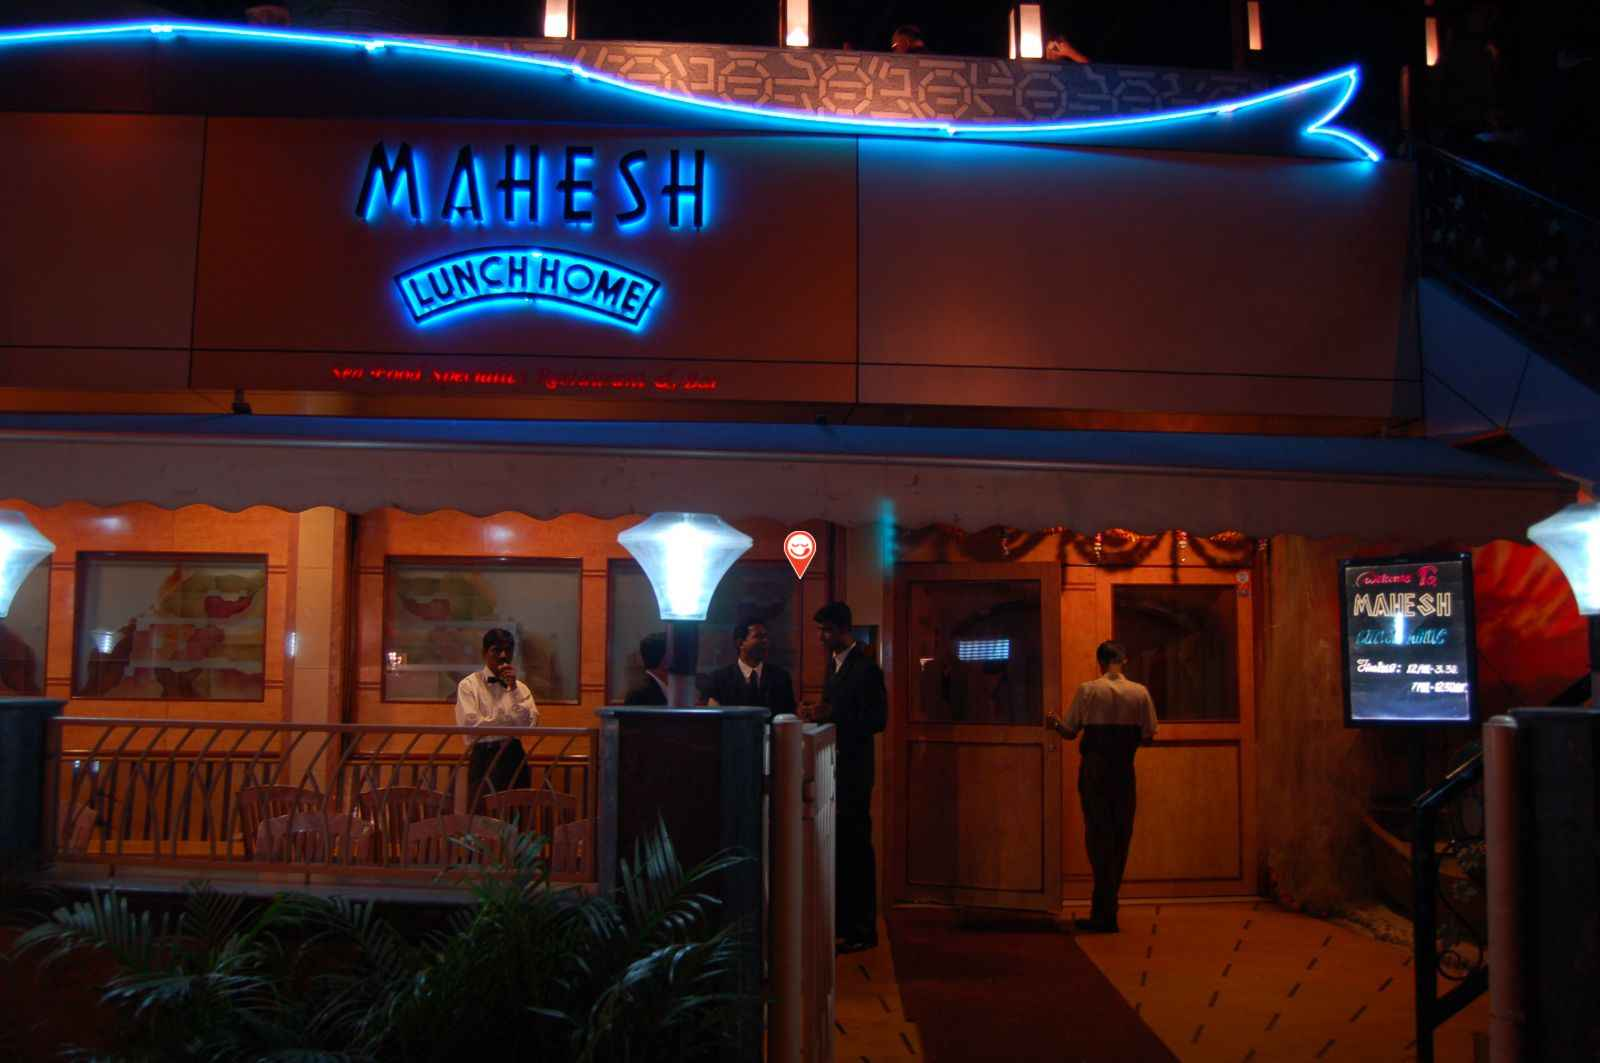 10 best street foods in Mumbai, Mahesh Lunch Home